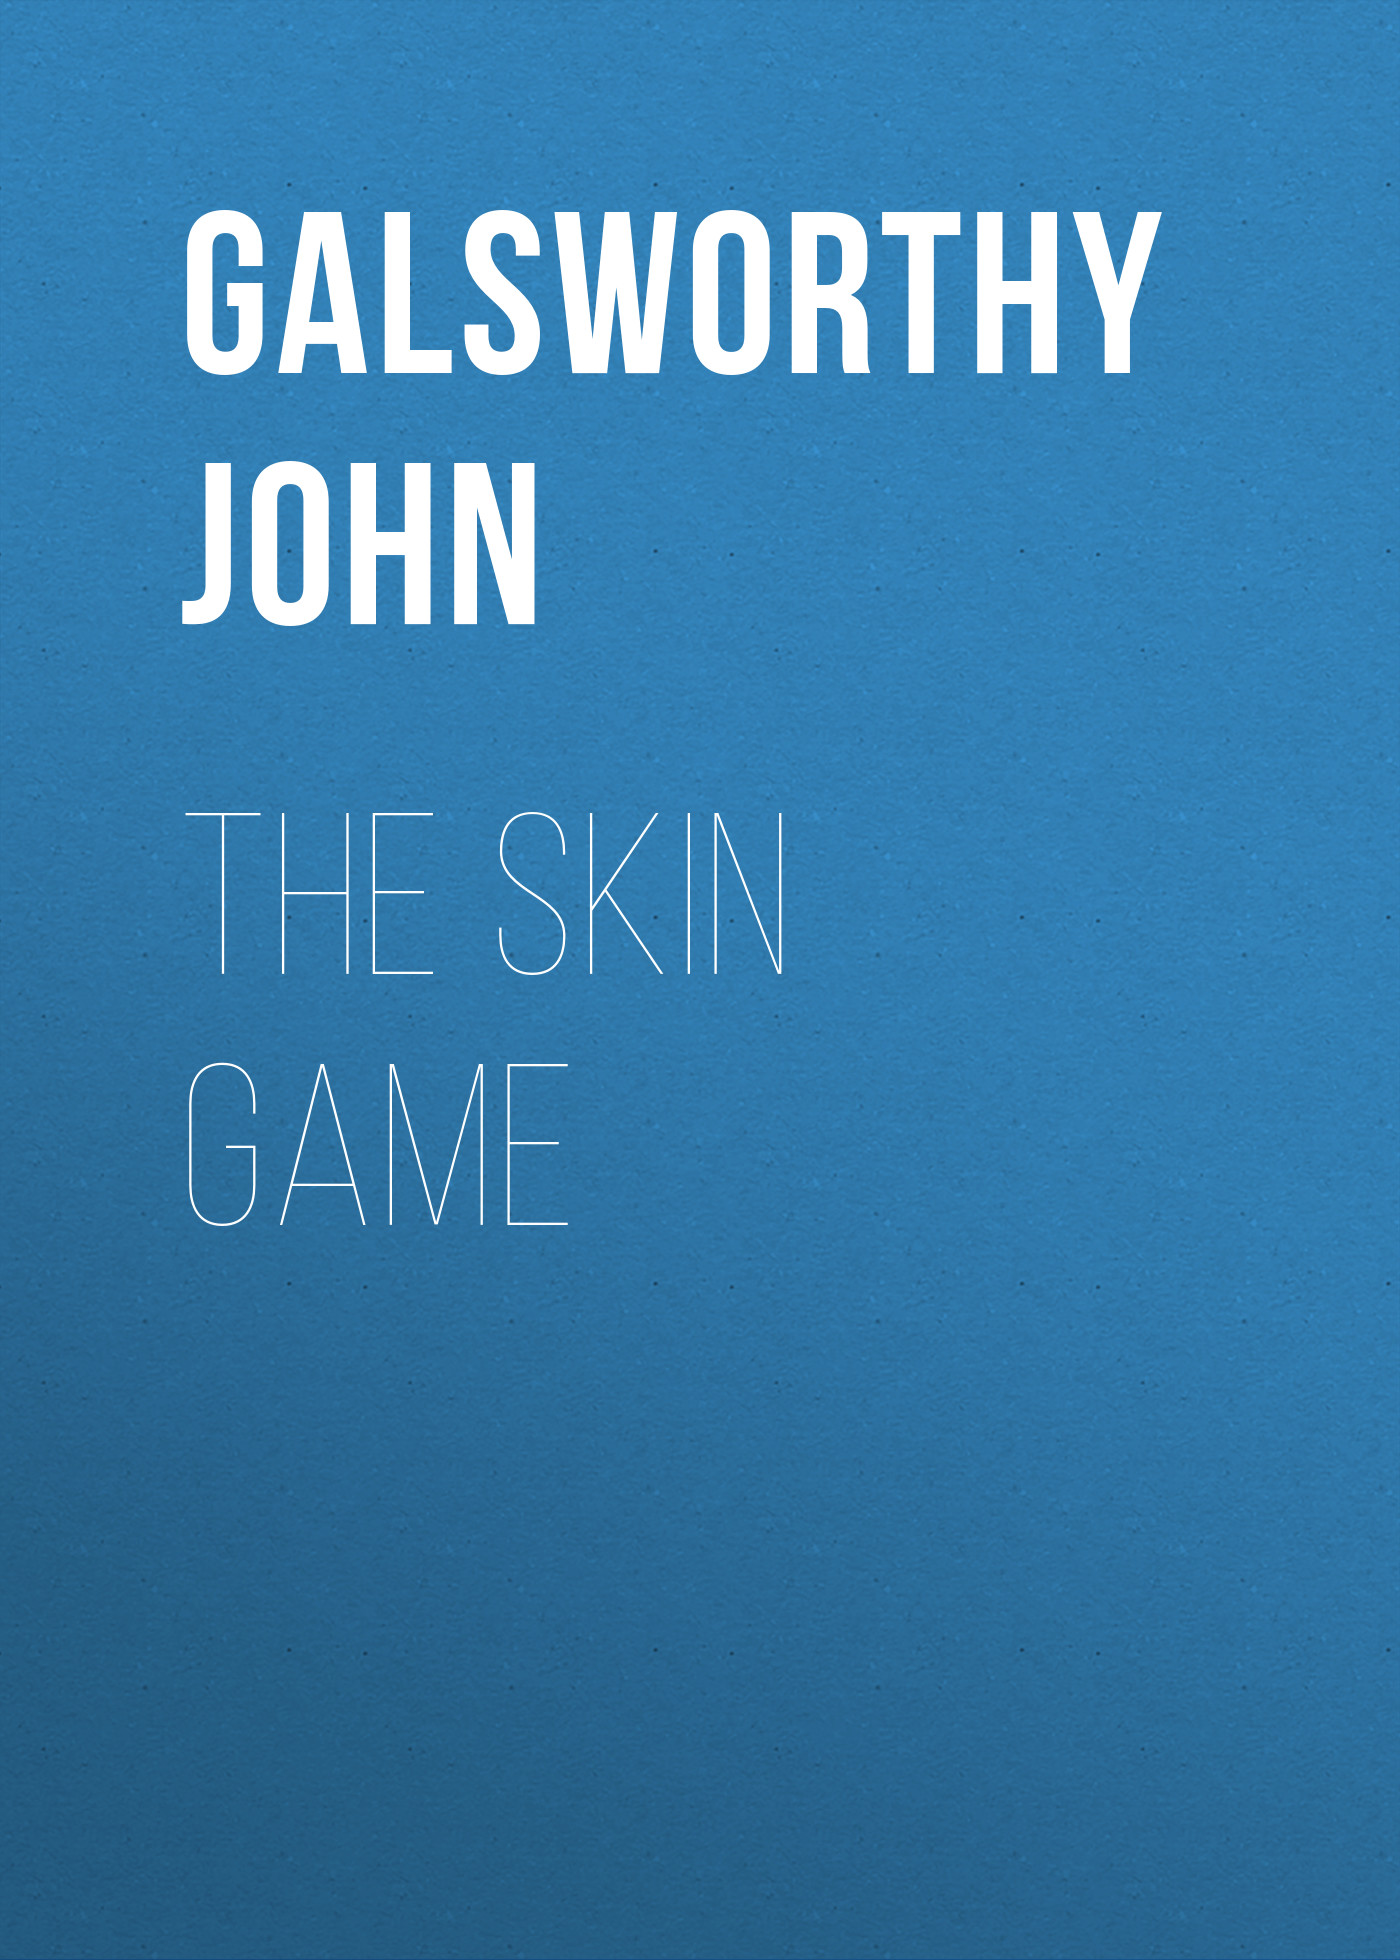 Galsworthy John The Skin Game костюм le frivole гламурная киса